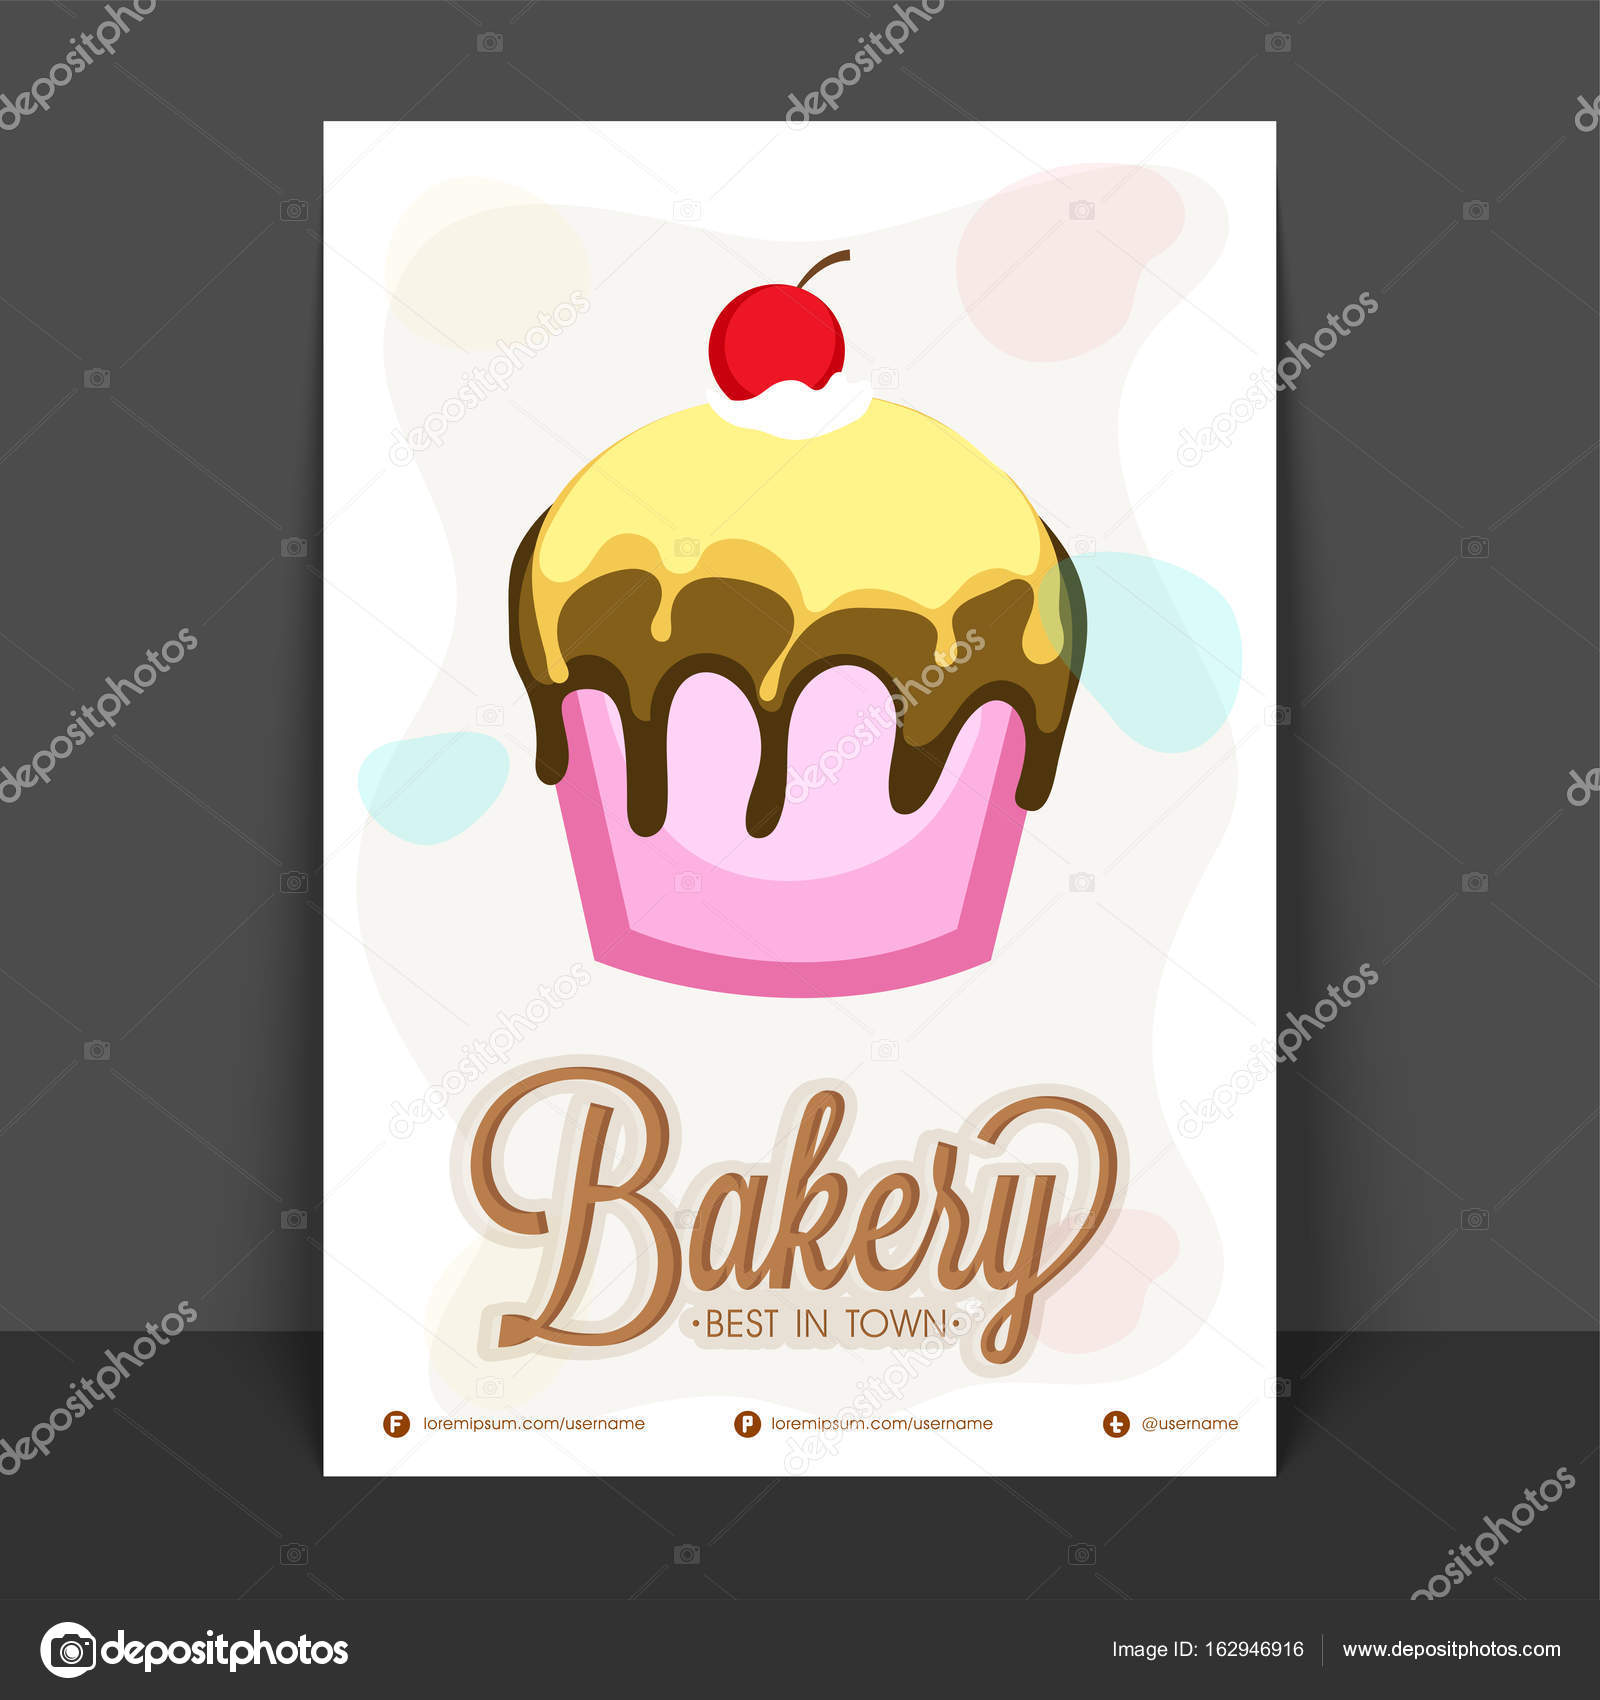 Bakery Flyer Template Design With Illustration Of Sweet Delicious Cupcake Vector By Alliesinteract